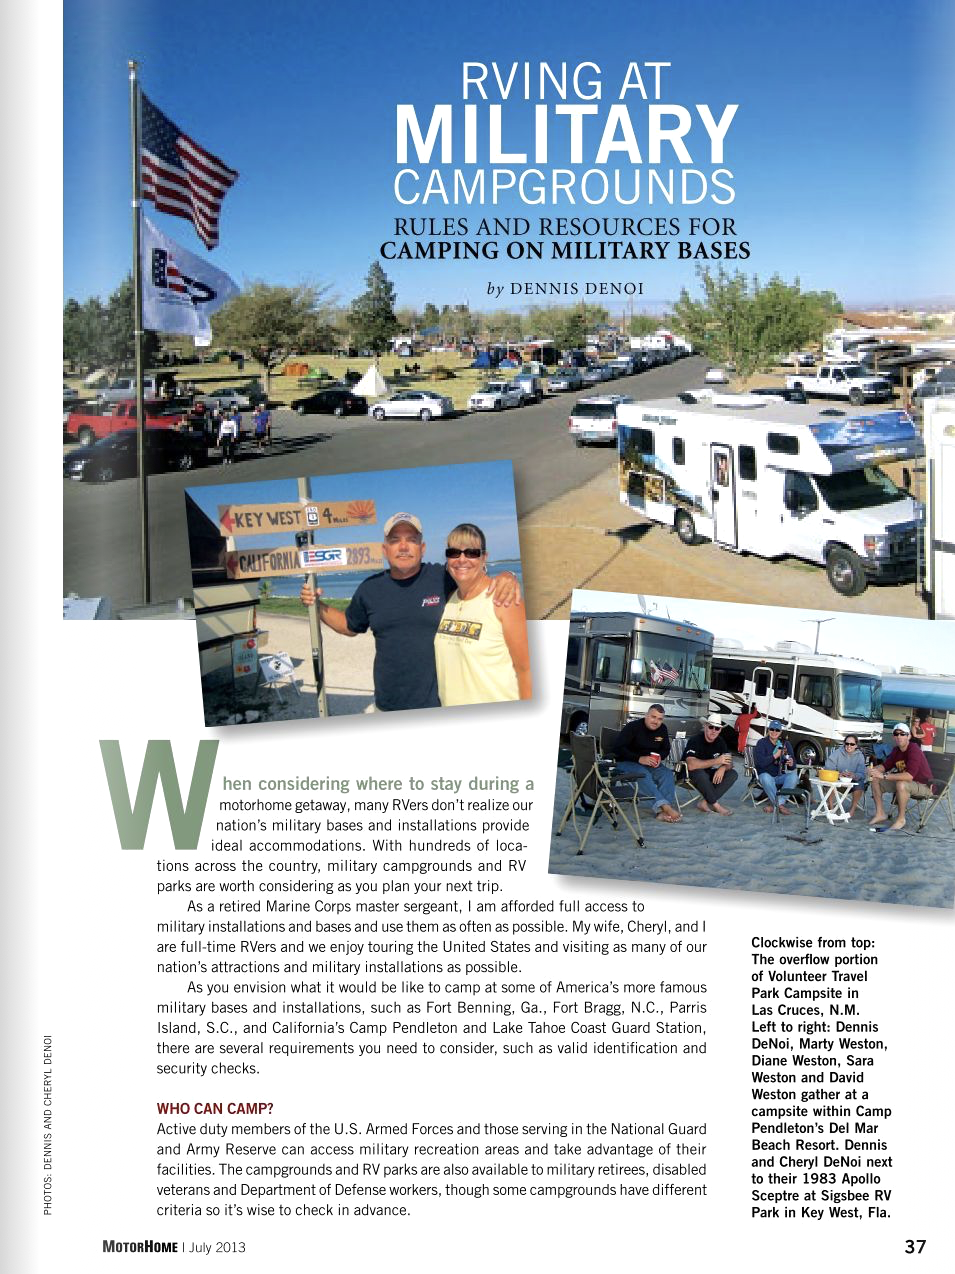 RVing at Military Campgrounds